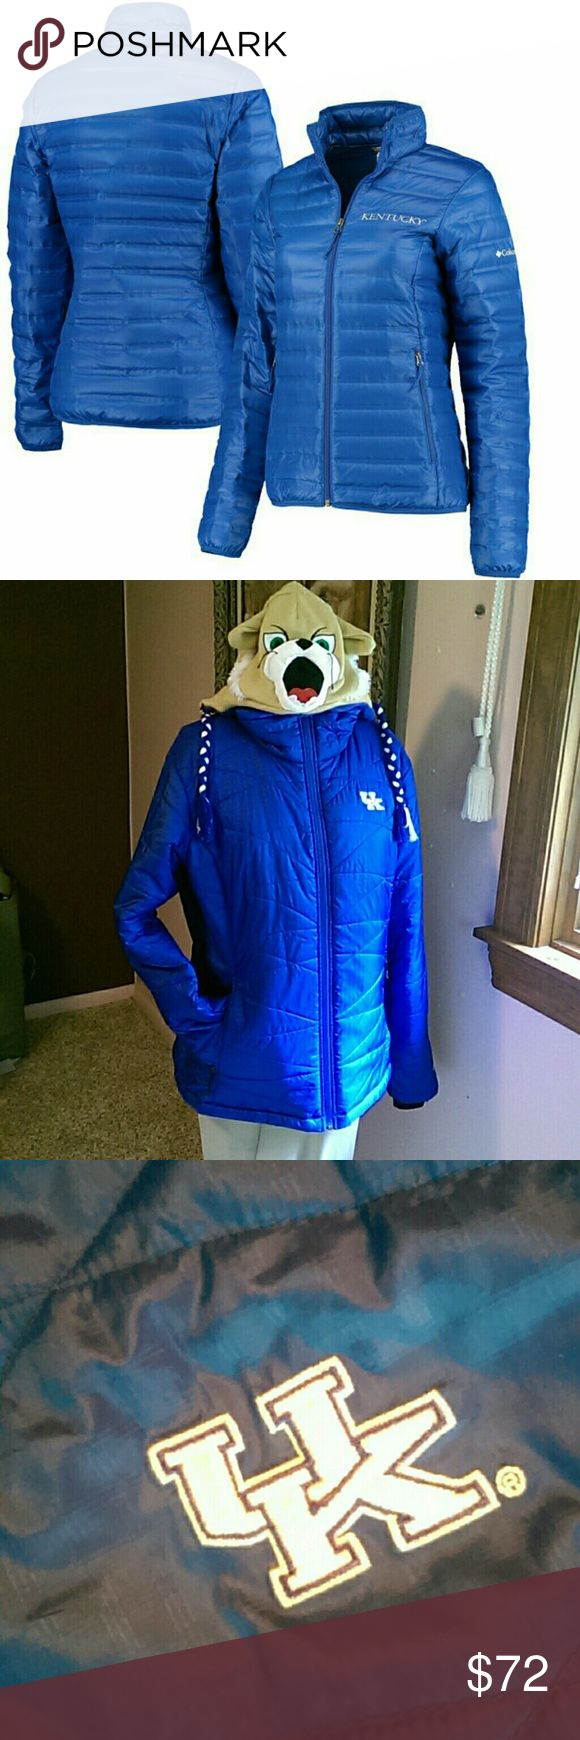 UK Wildcat Columbia jacket XL Like new condition. Get your Wildcat on! University of Kentucky. Mums. Past life. Another past love. Moving on! Hugs Columbia Jackets & Coats Puffers